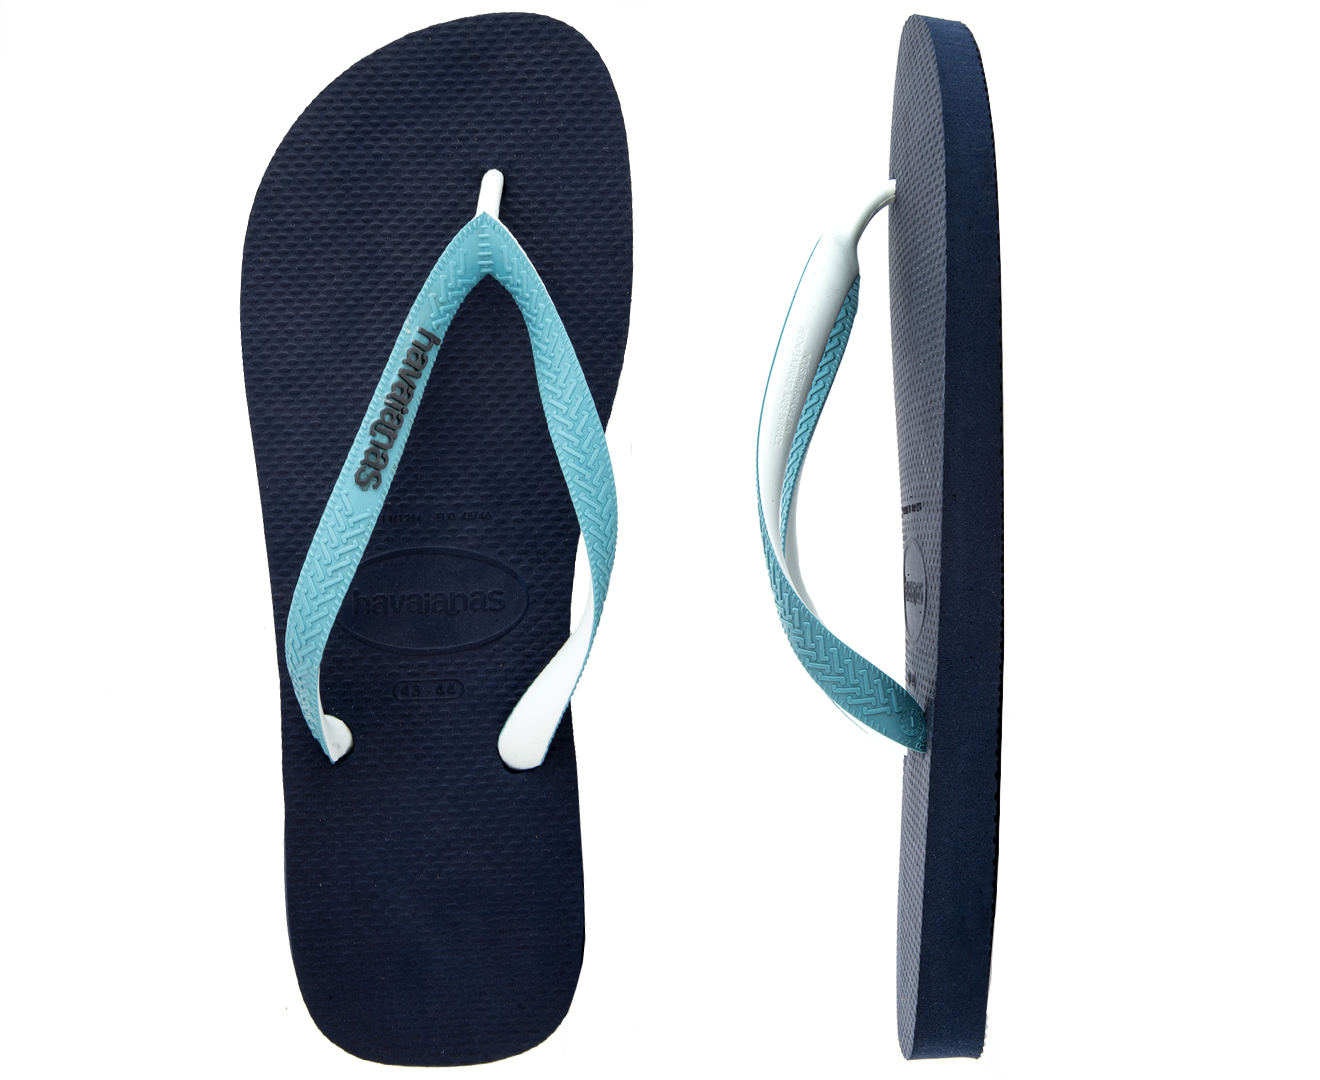 eaadc7a05 Havaianas Top Mix Thongs - Navy Blue Mineral